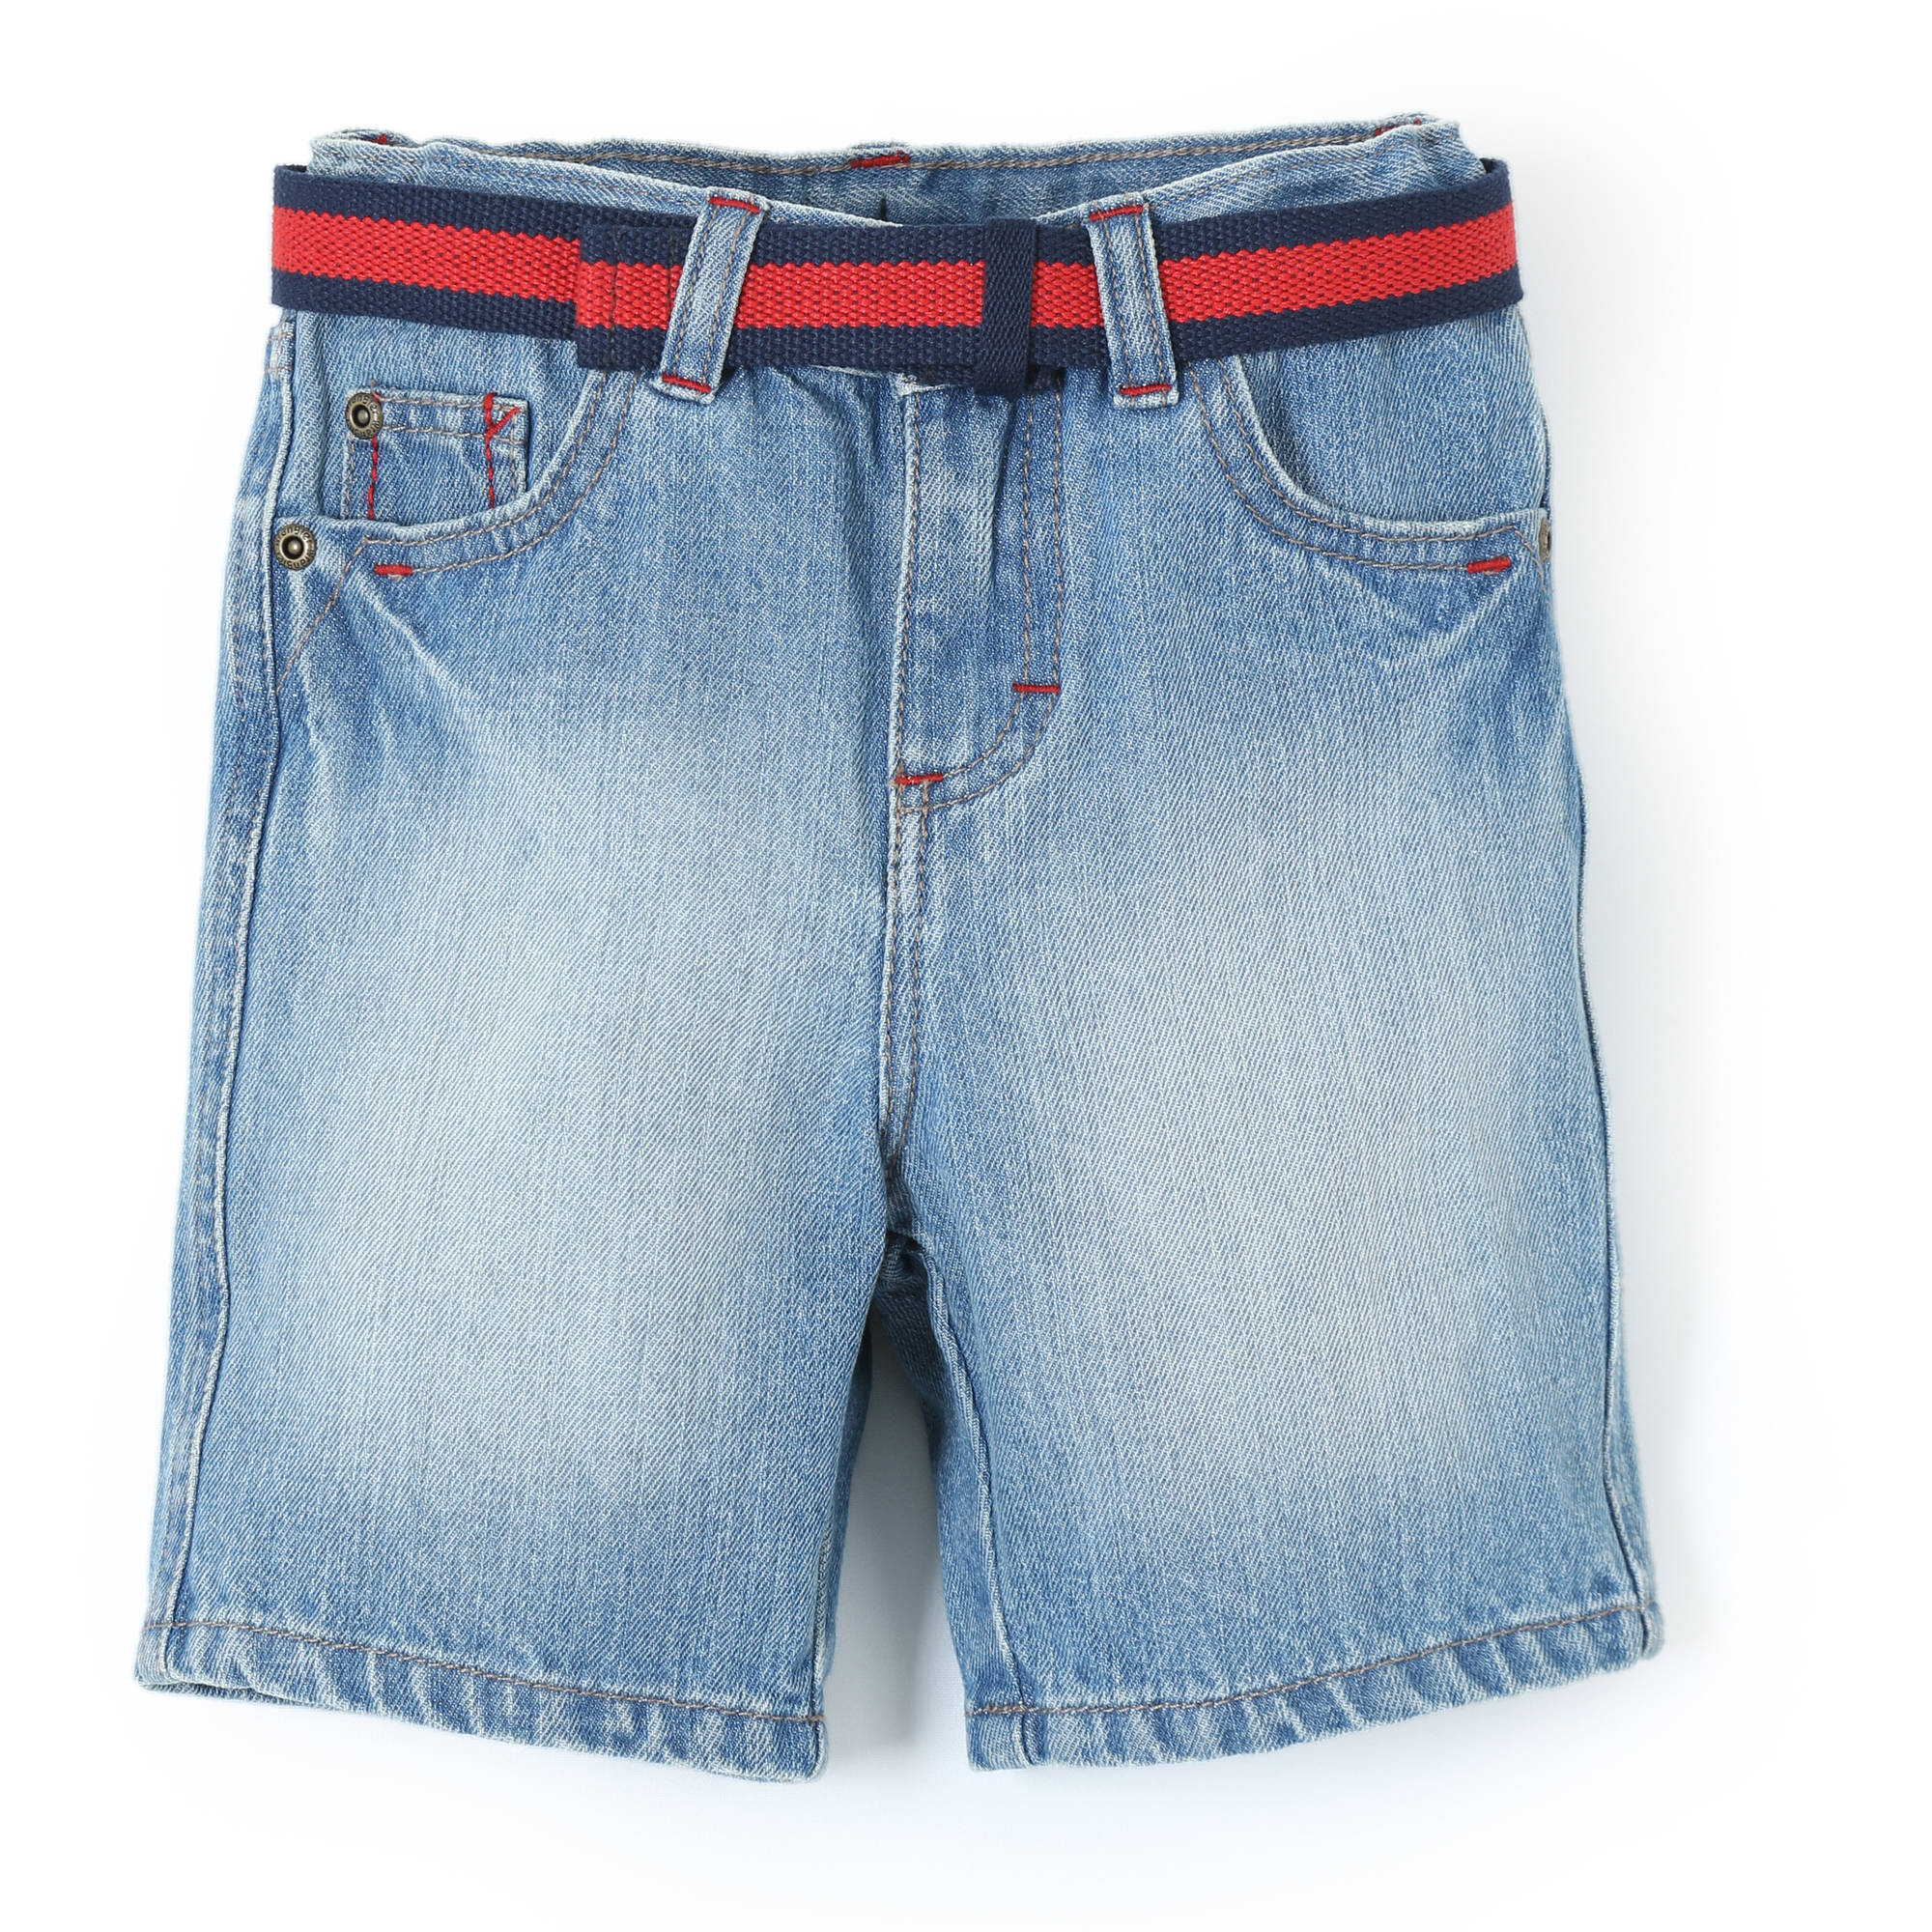 Toddler Boy Premium Relaxed Fit Shorts